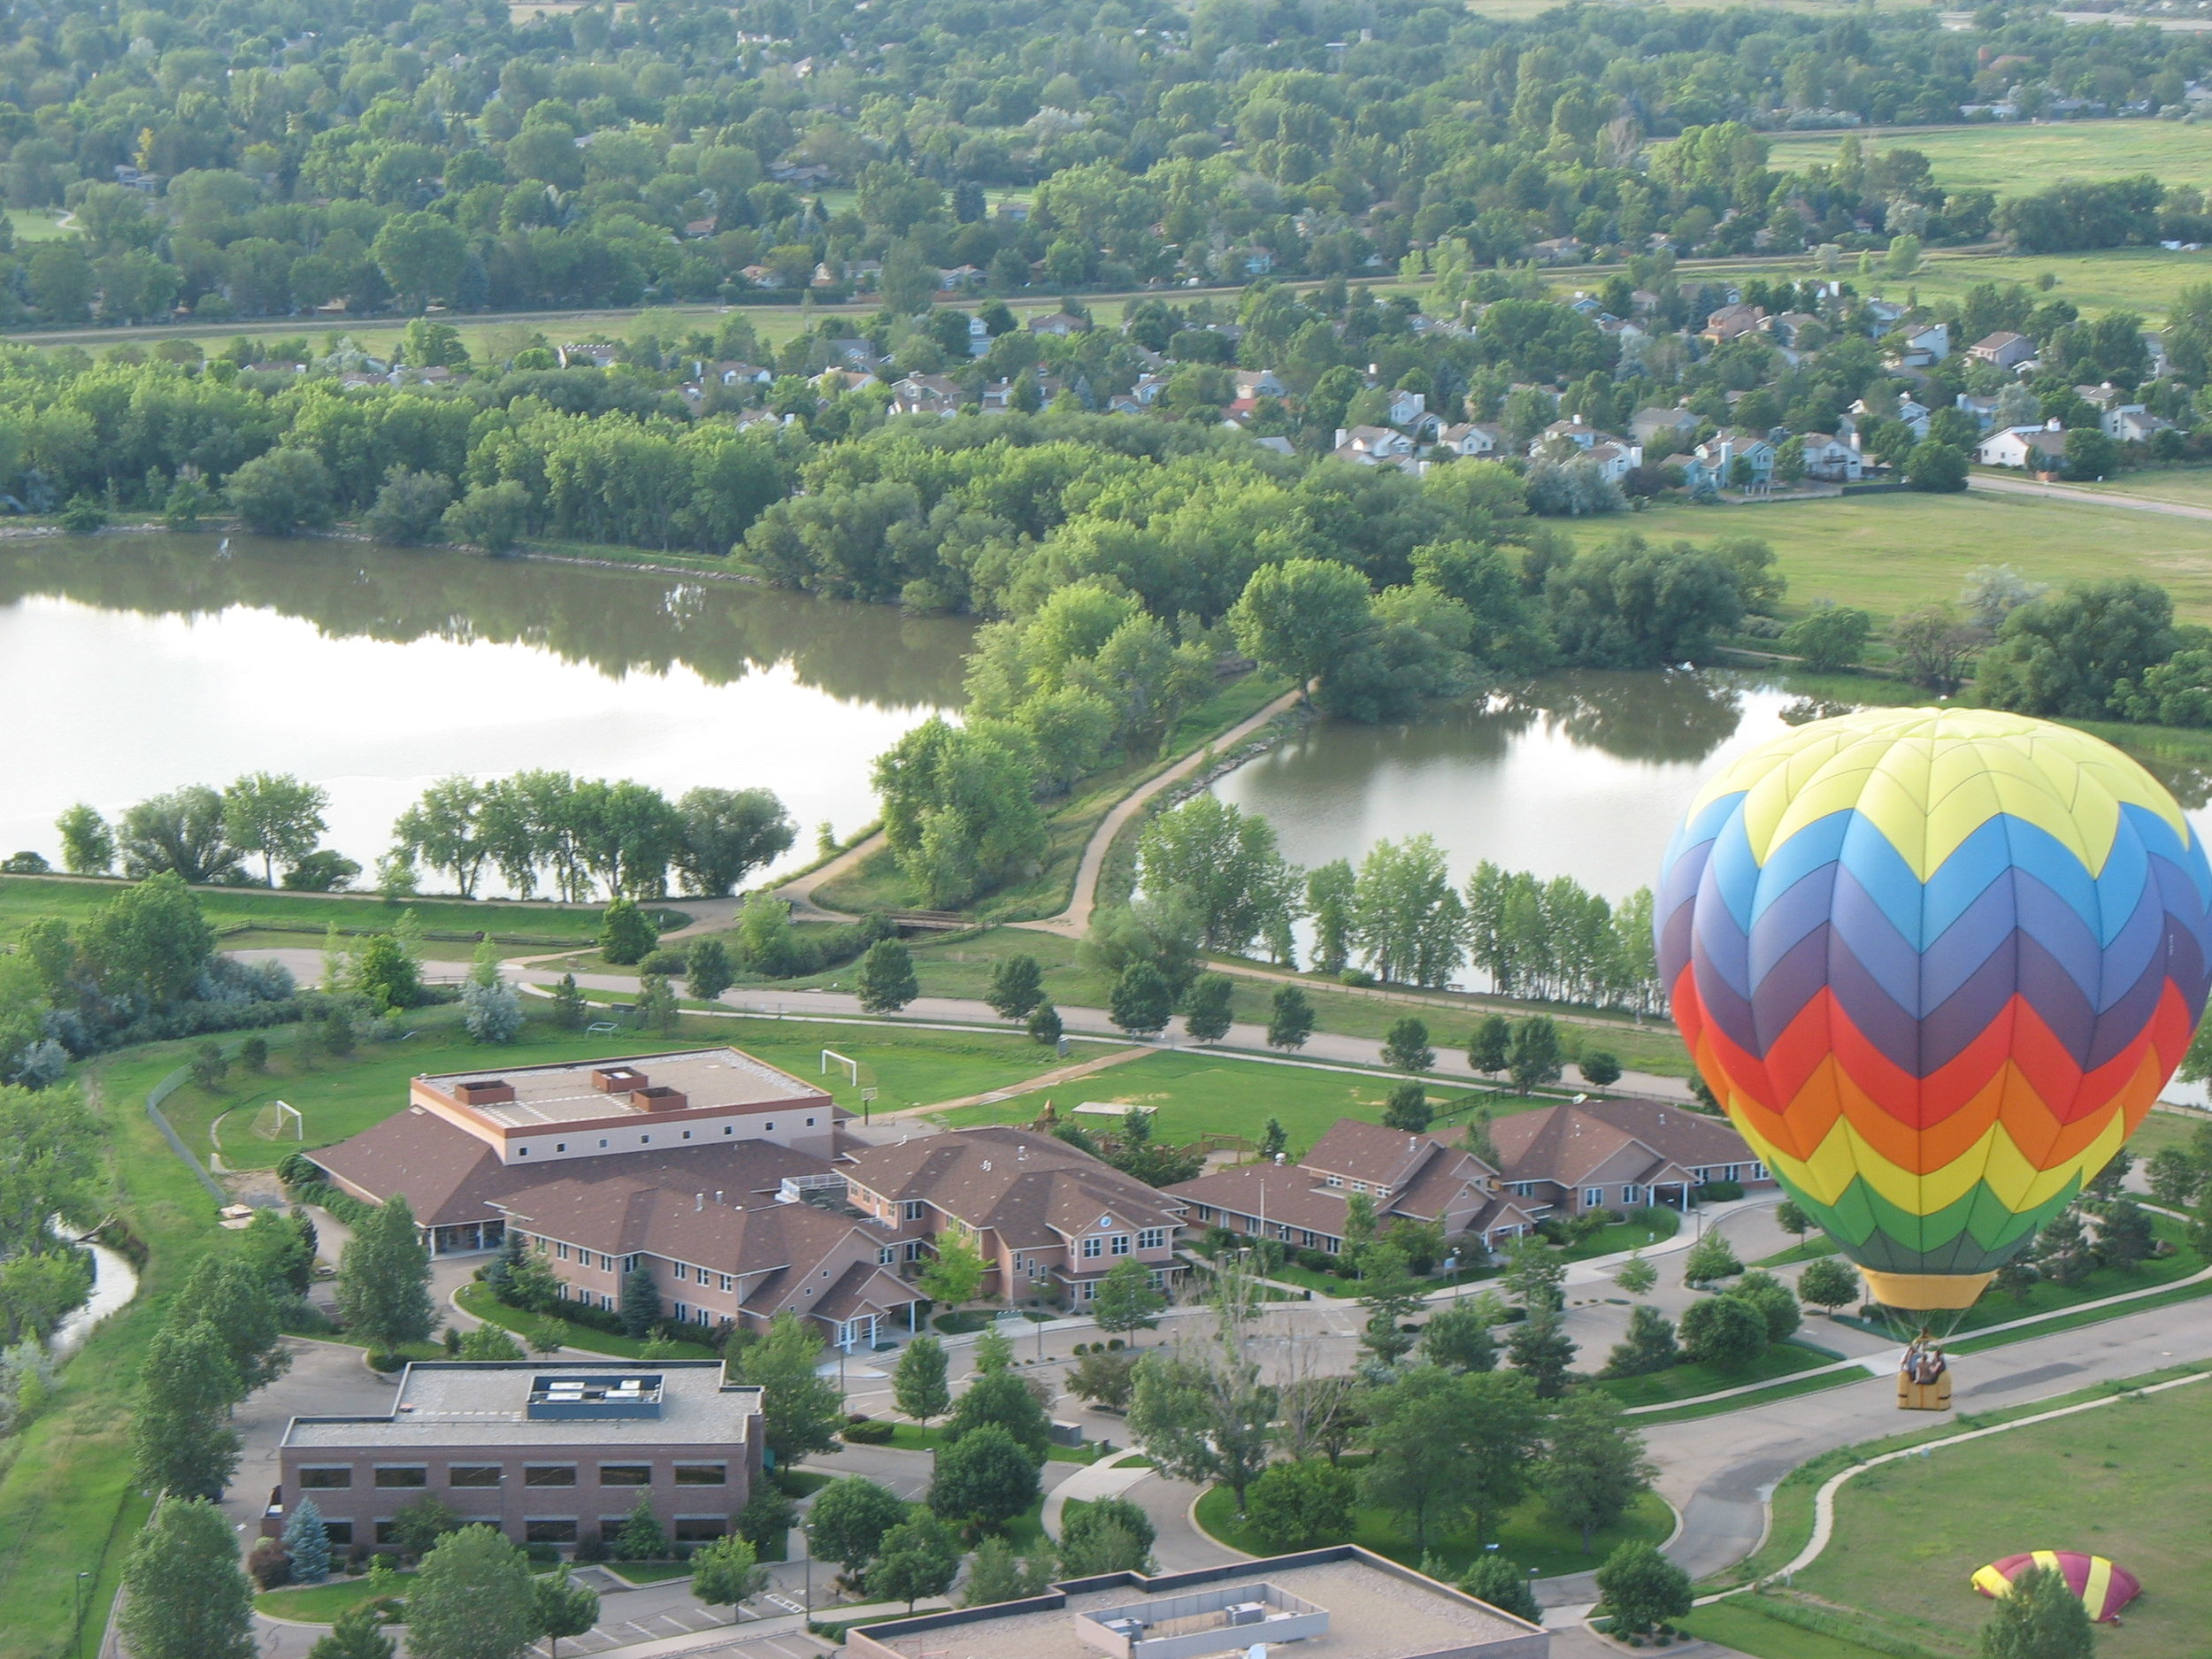 campus from balloon up close.jpg